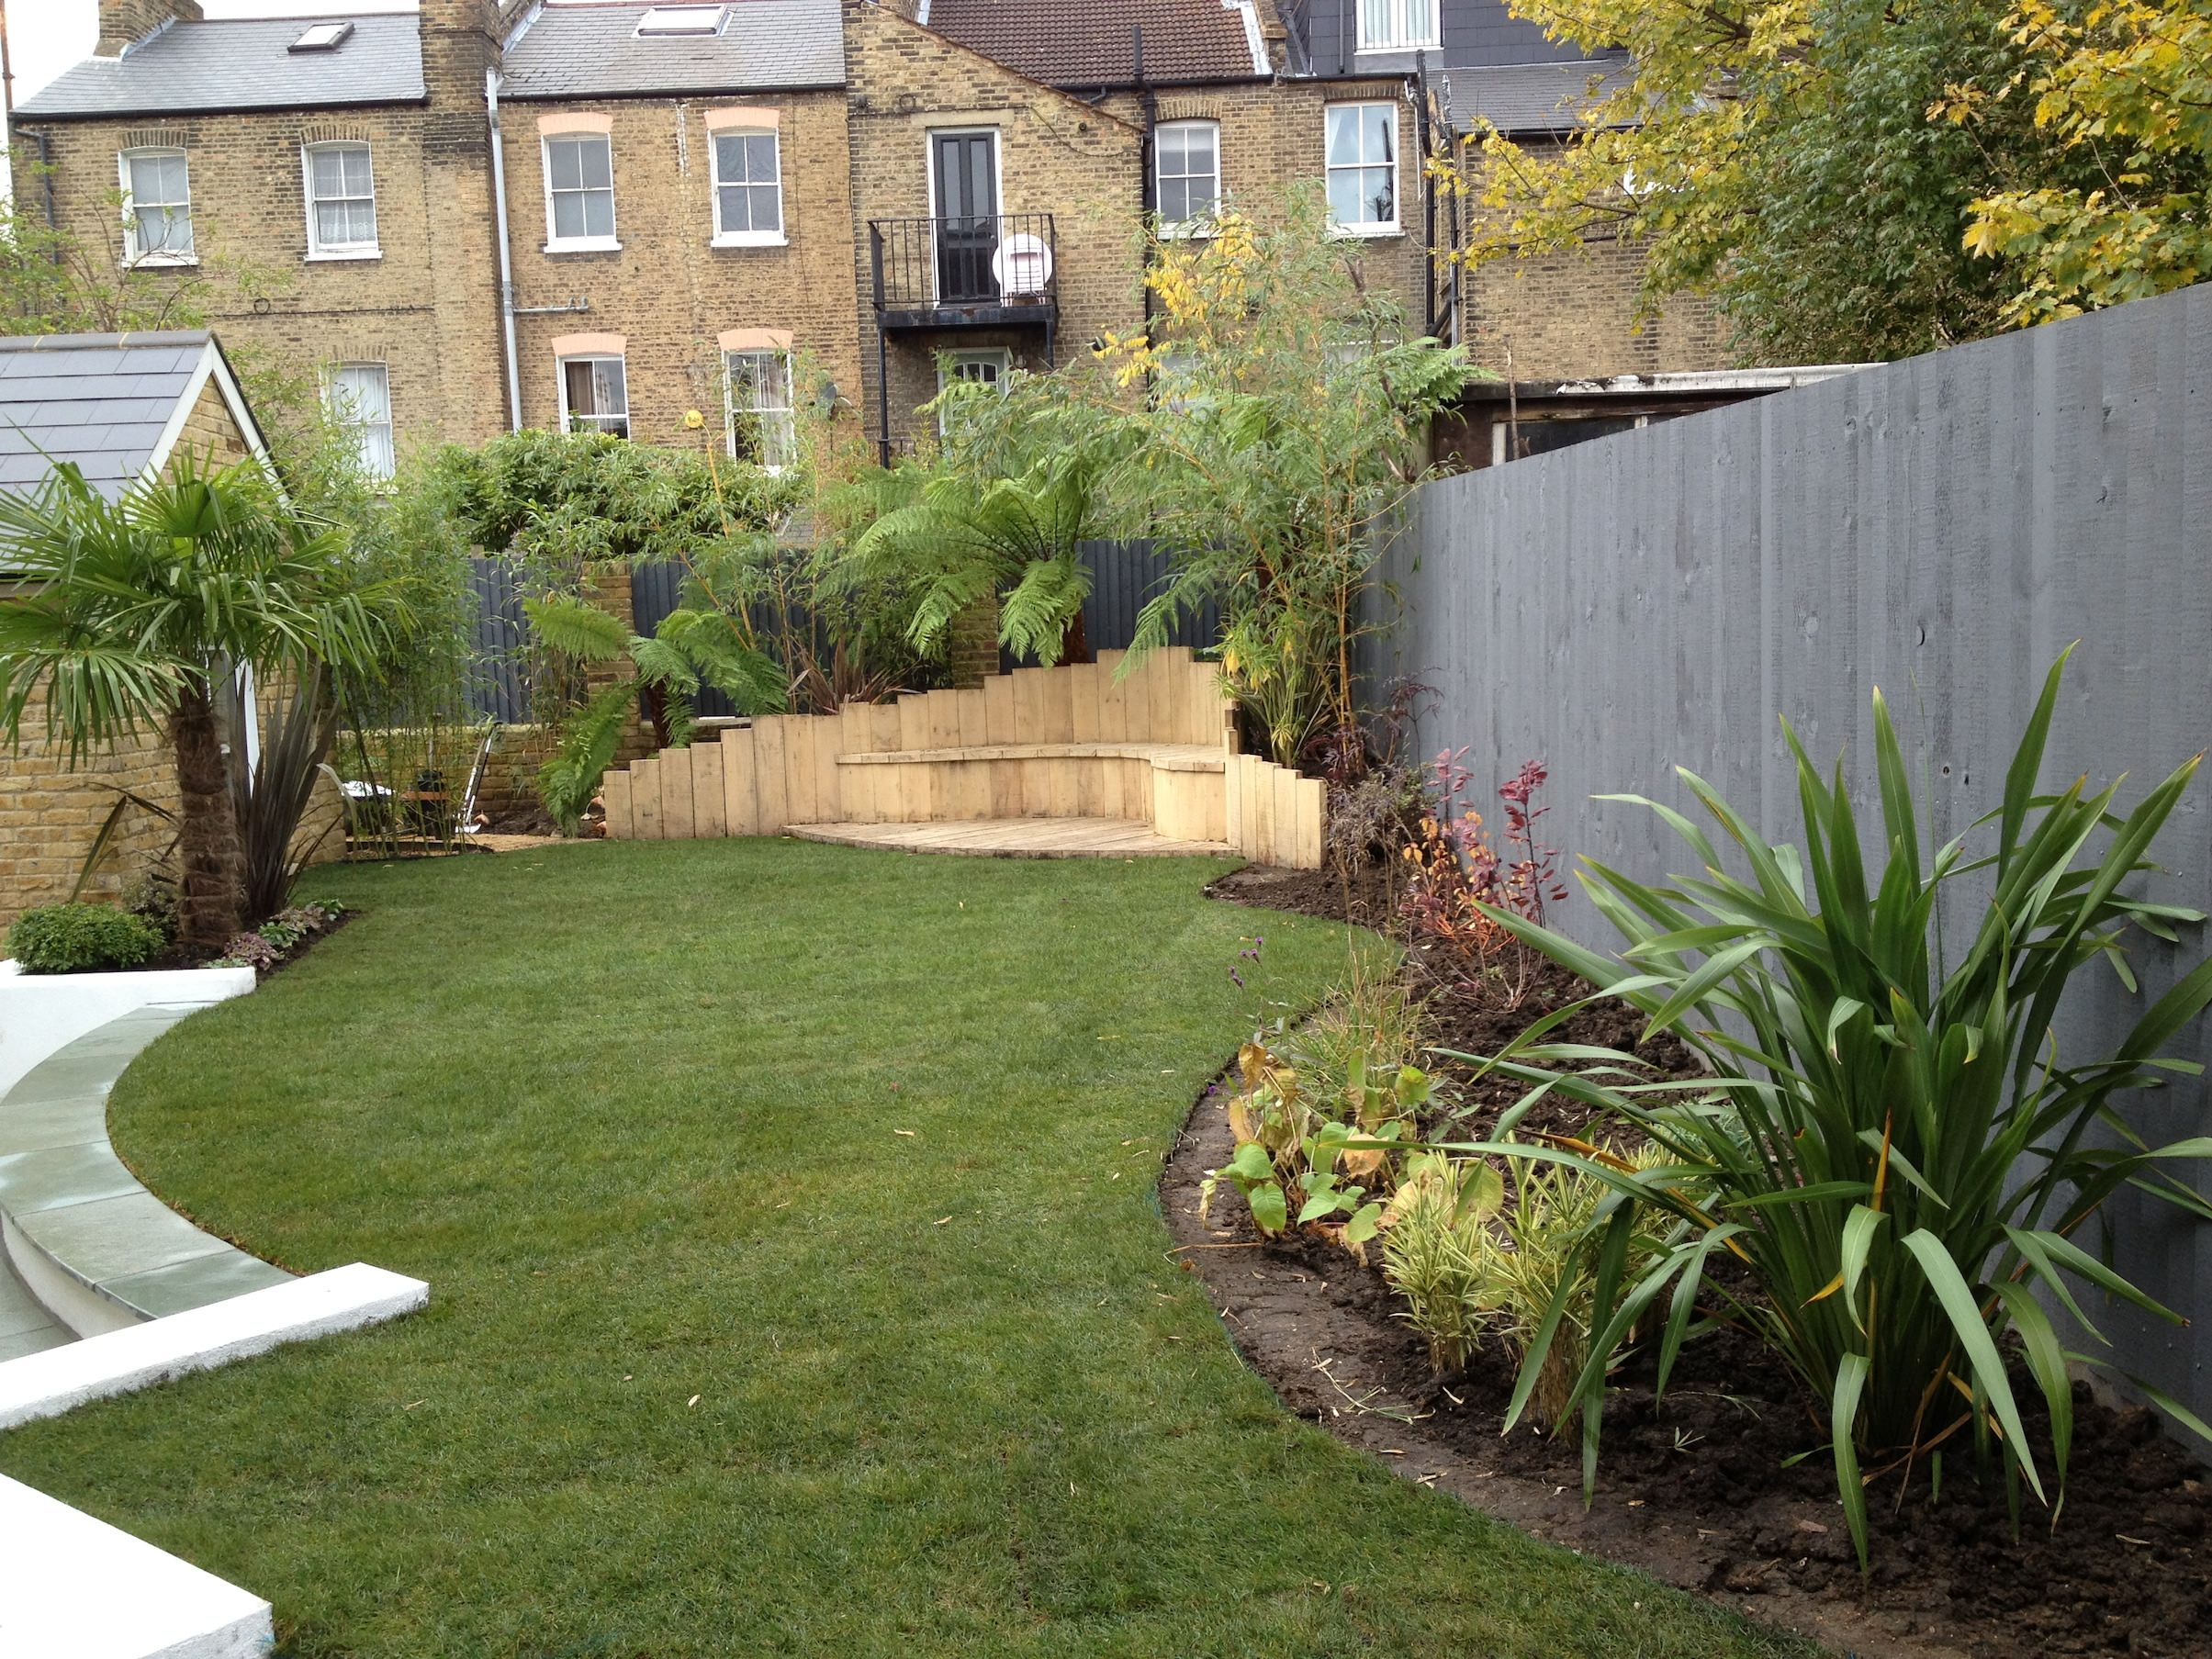 Low maintenance garden designs garden club london - Backyard landscape designs ...